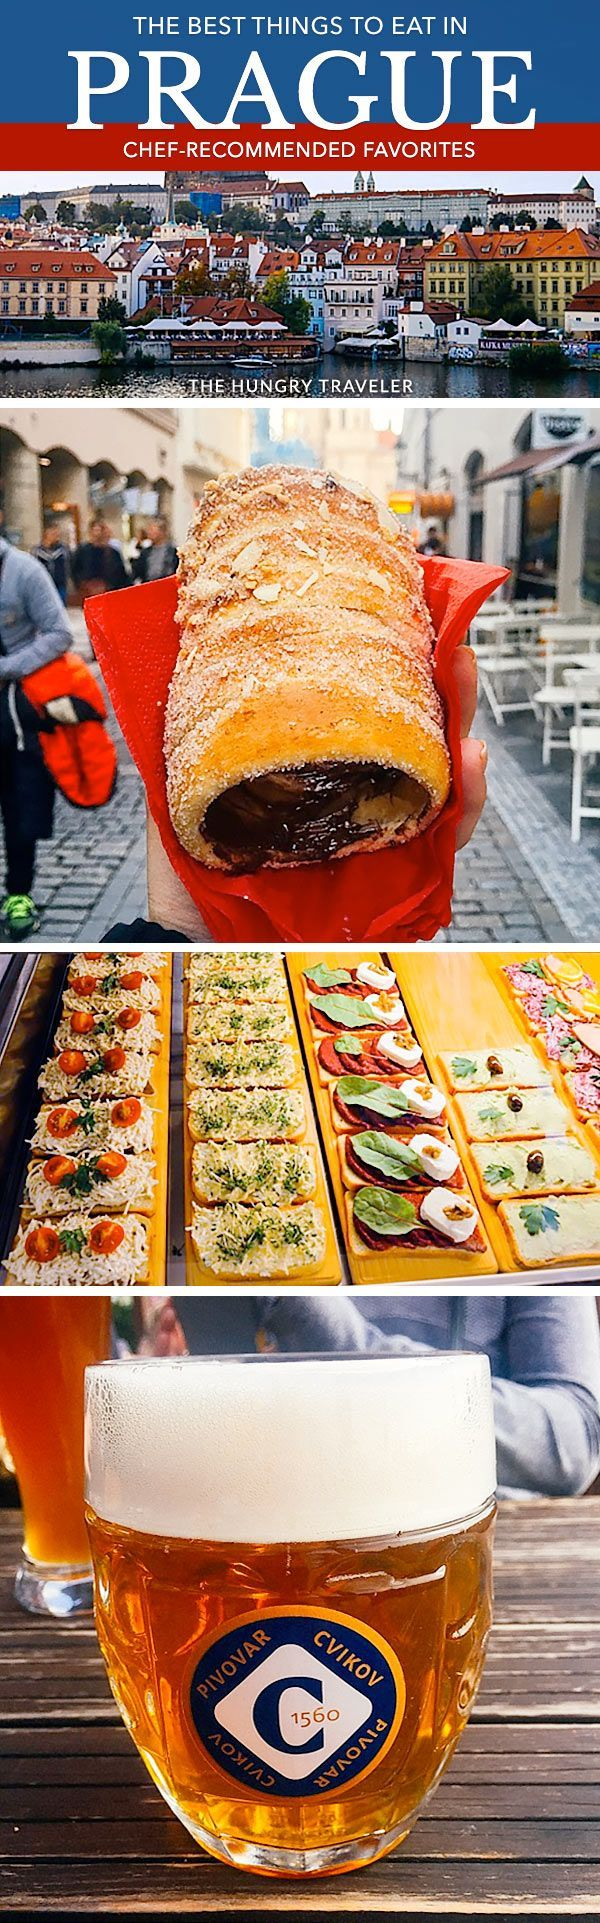 The Best Things To Eat In Prague | The Hungry Traveler